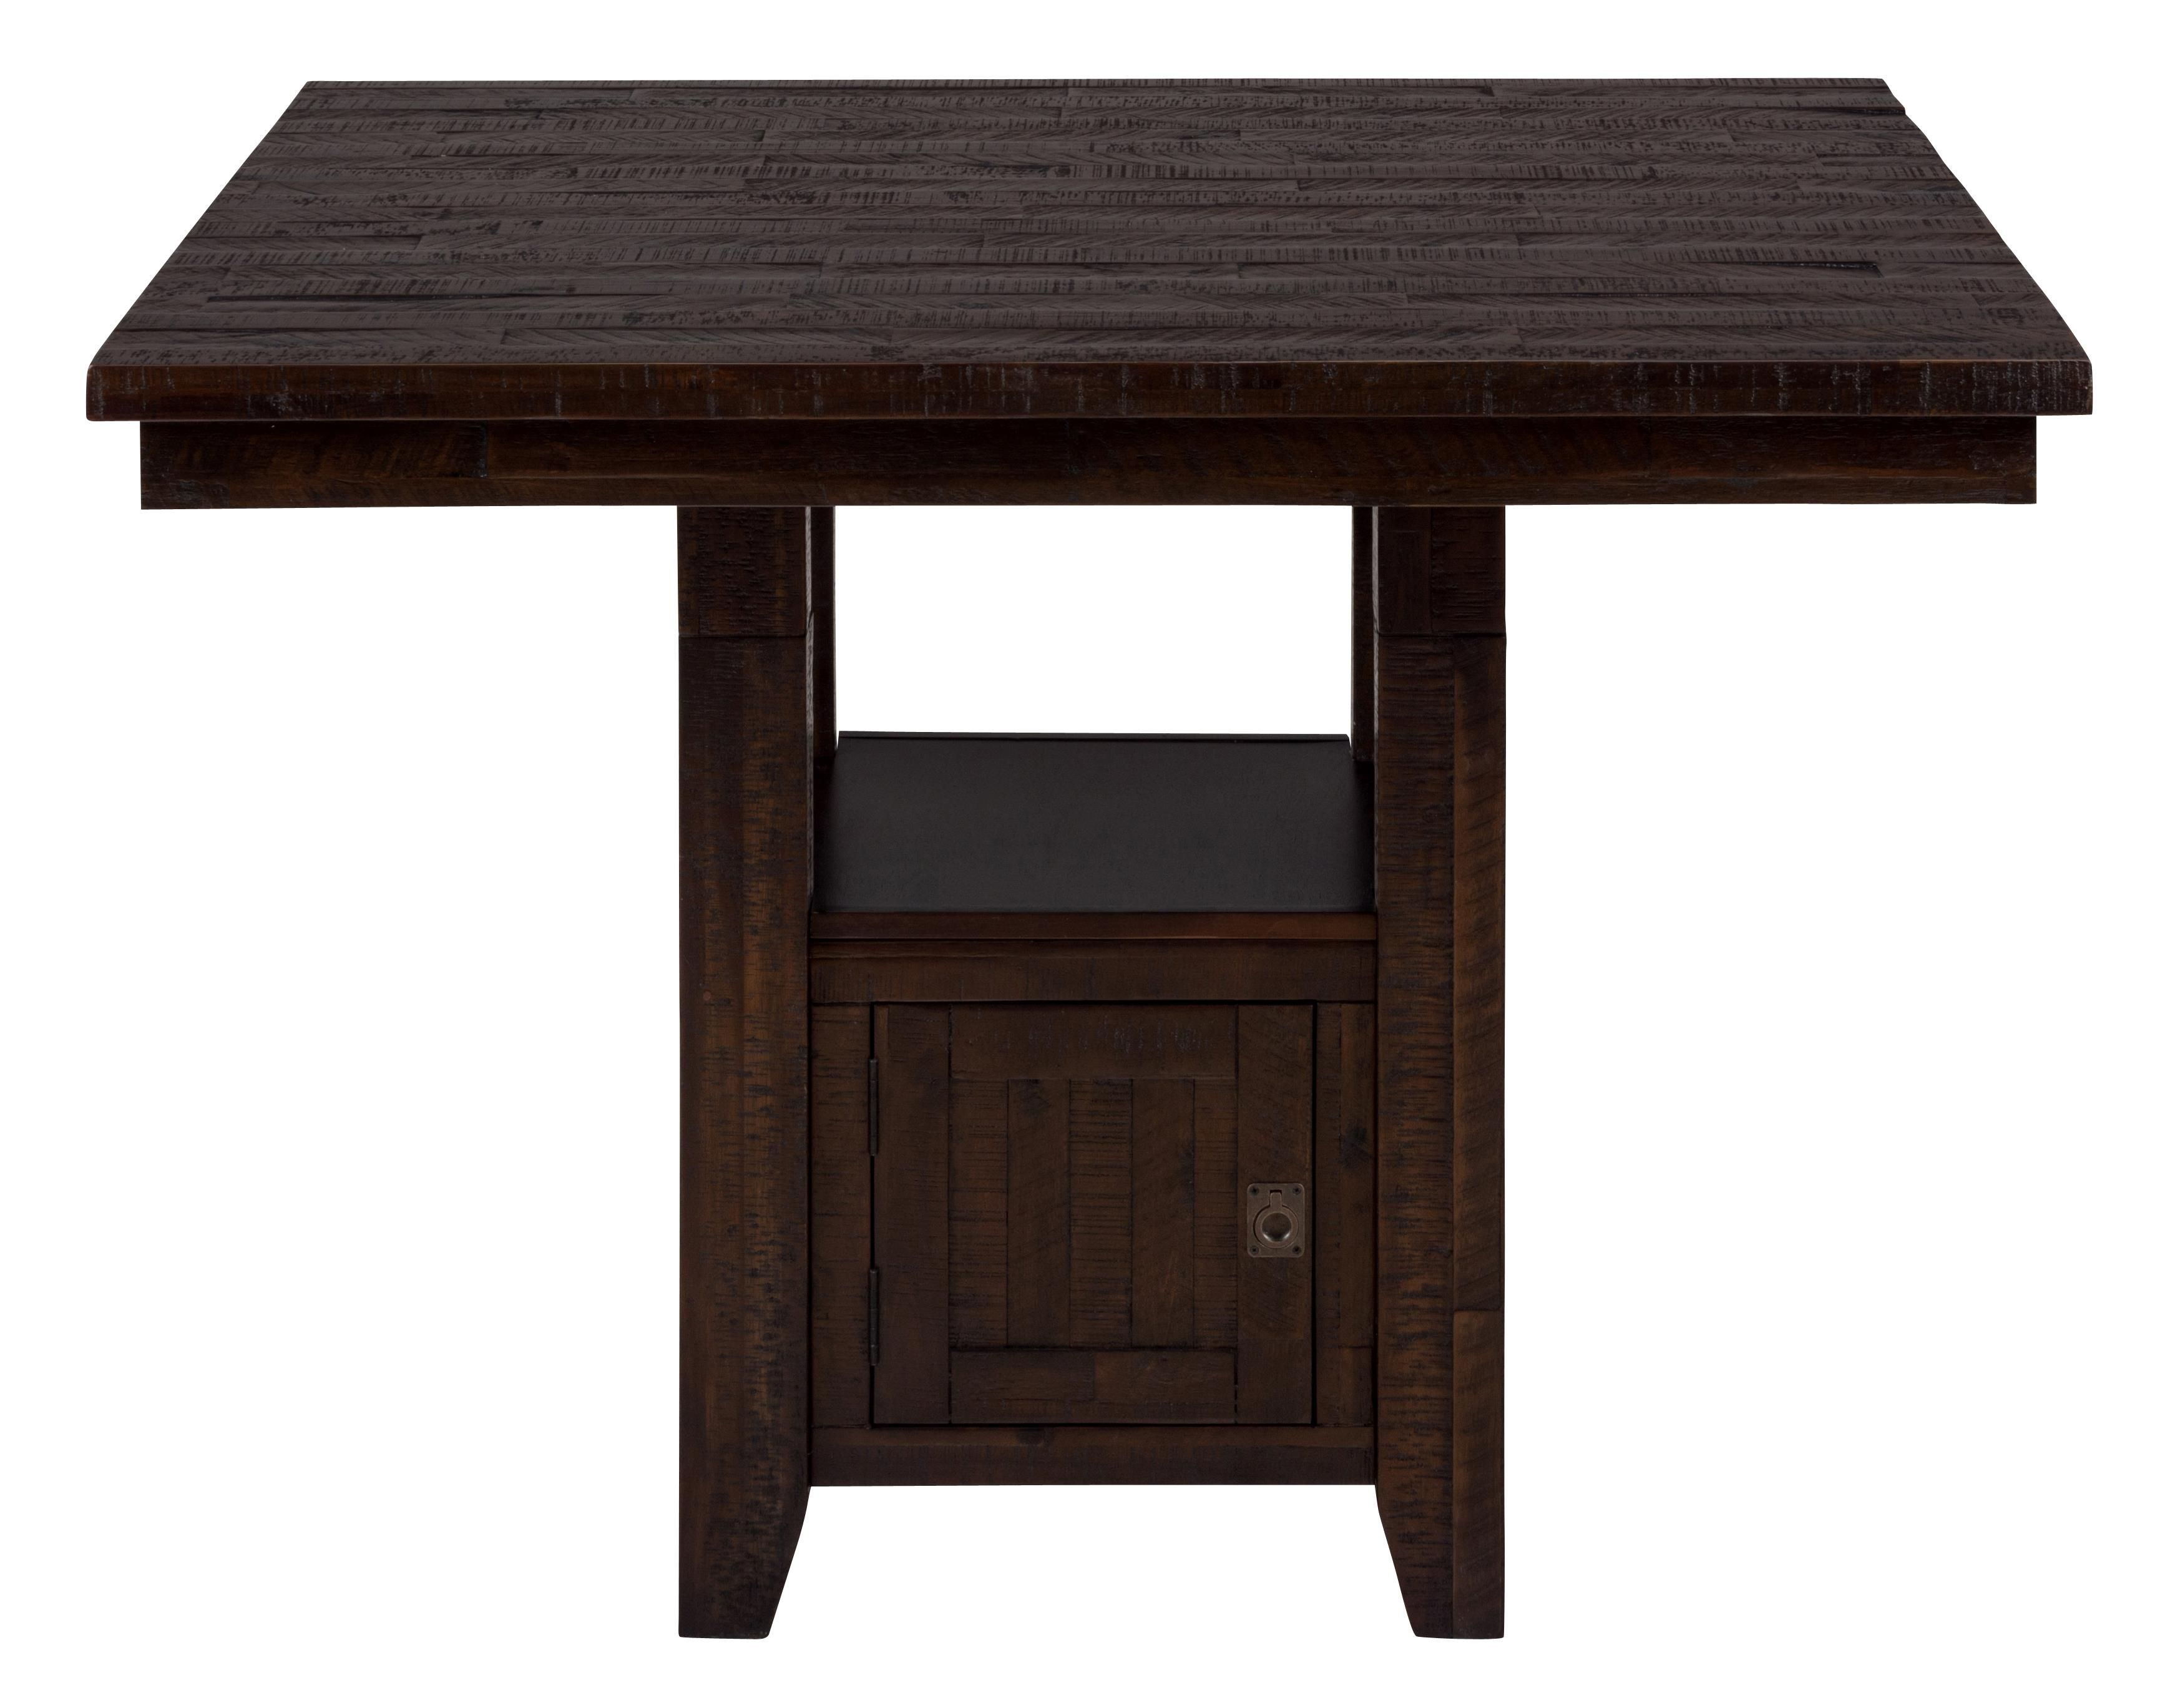 Kona Grove Fixed Counter Table with Storage Base by Jofran at Lapeer Furniture & Mattress Center